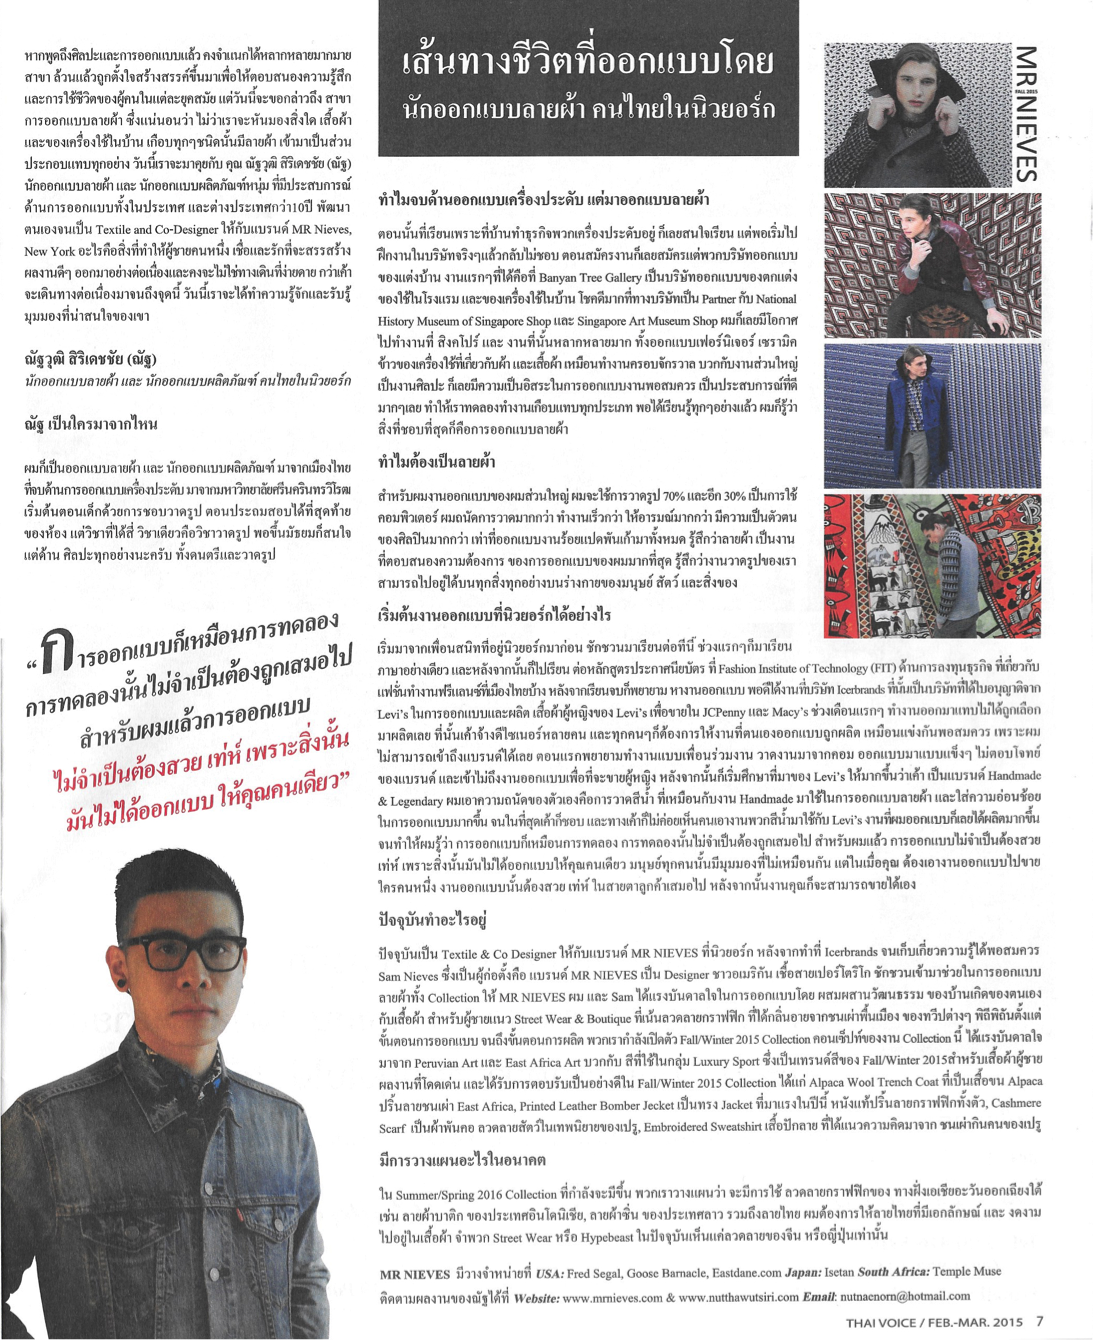 Nutthawut Siridejcha Interview, Thai Voice Magazine  ,   February - March 2015